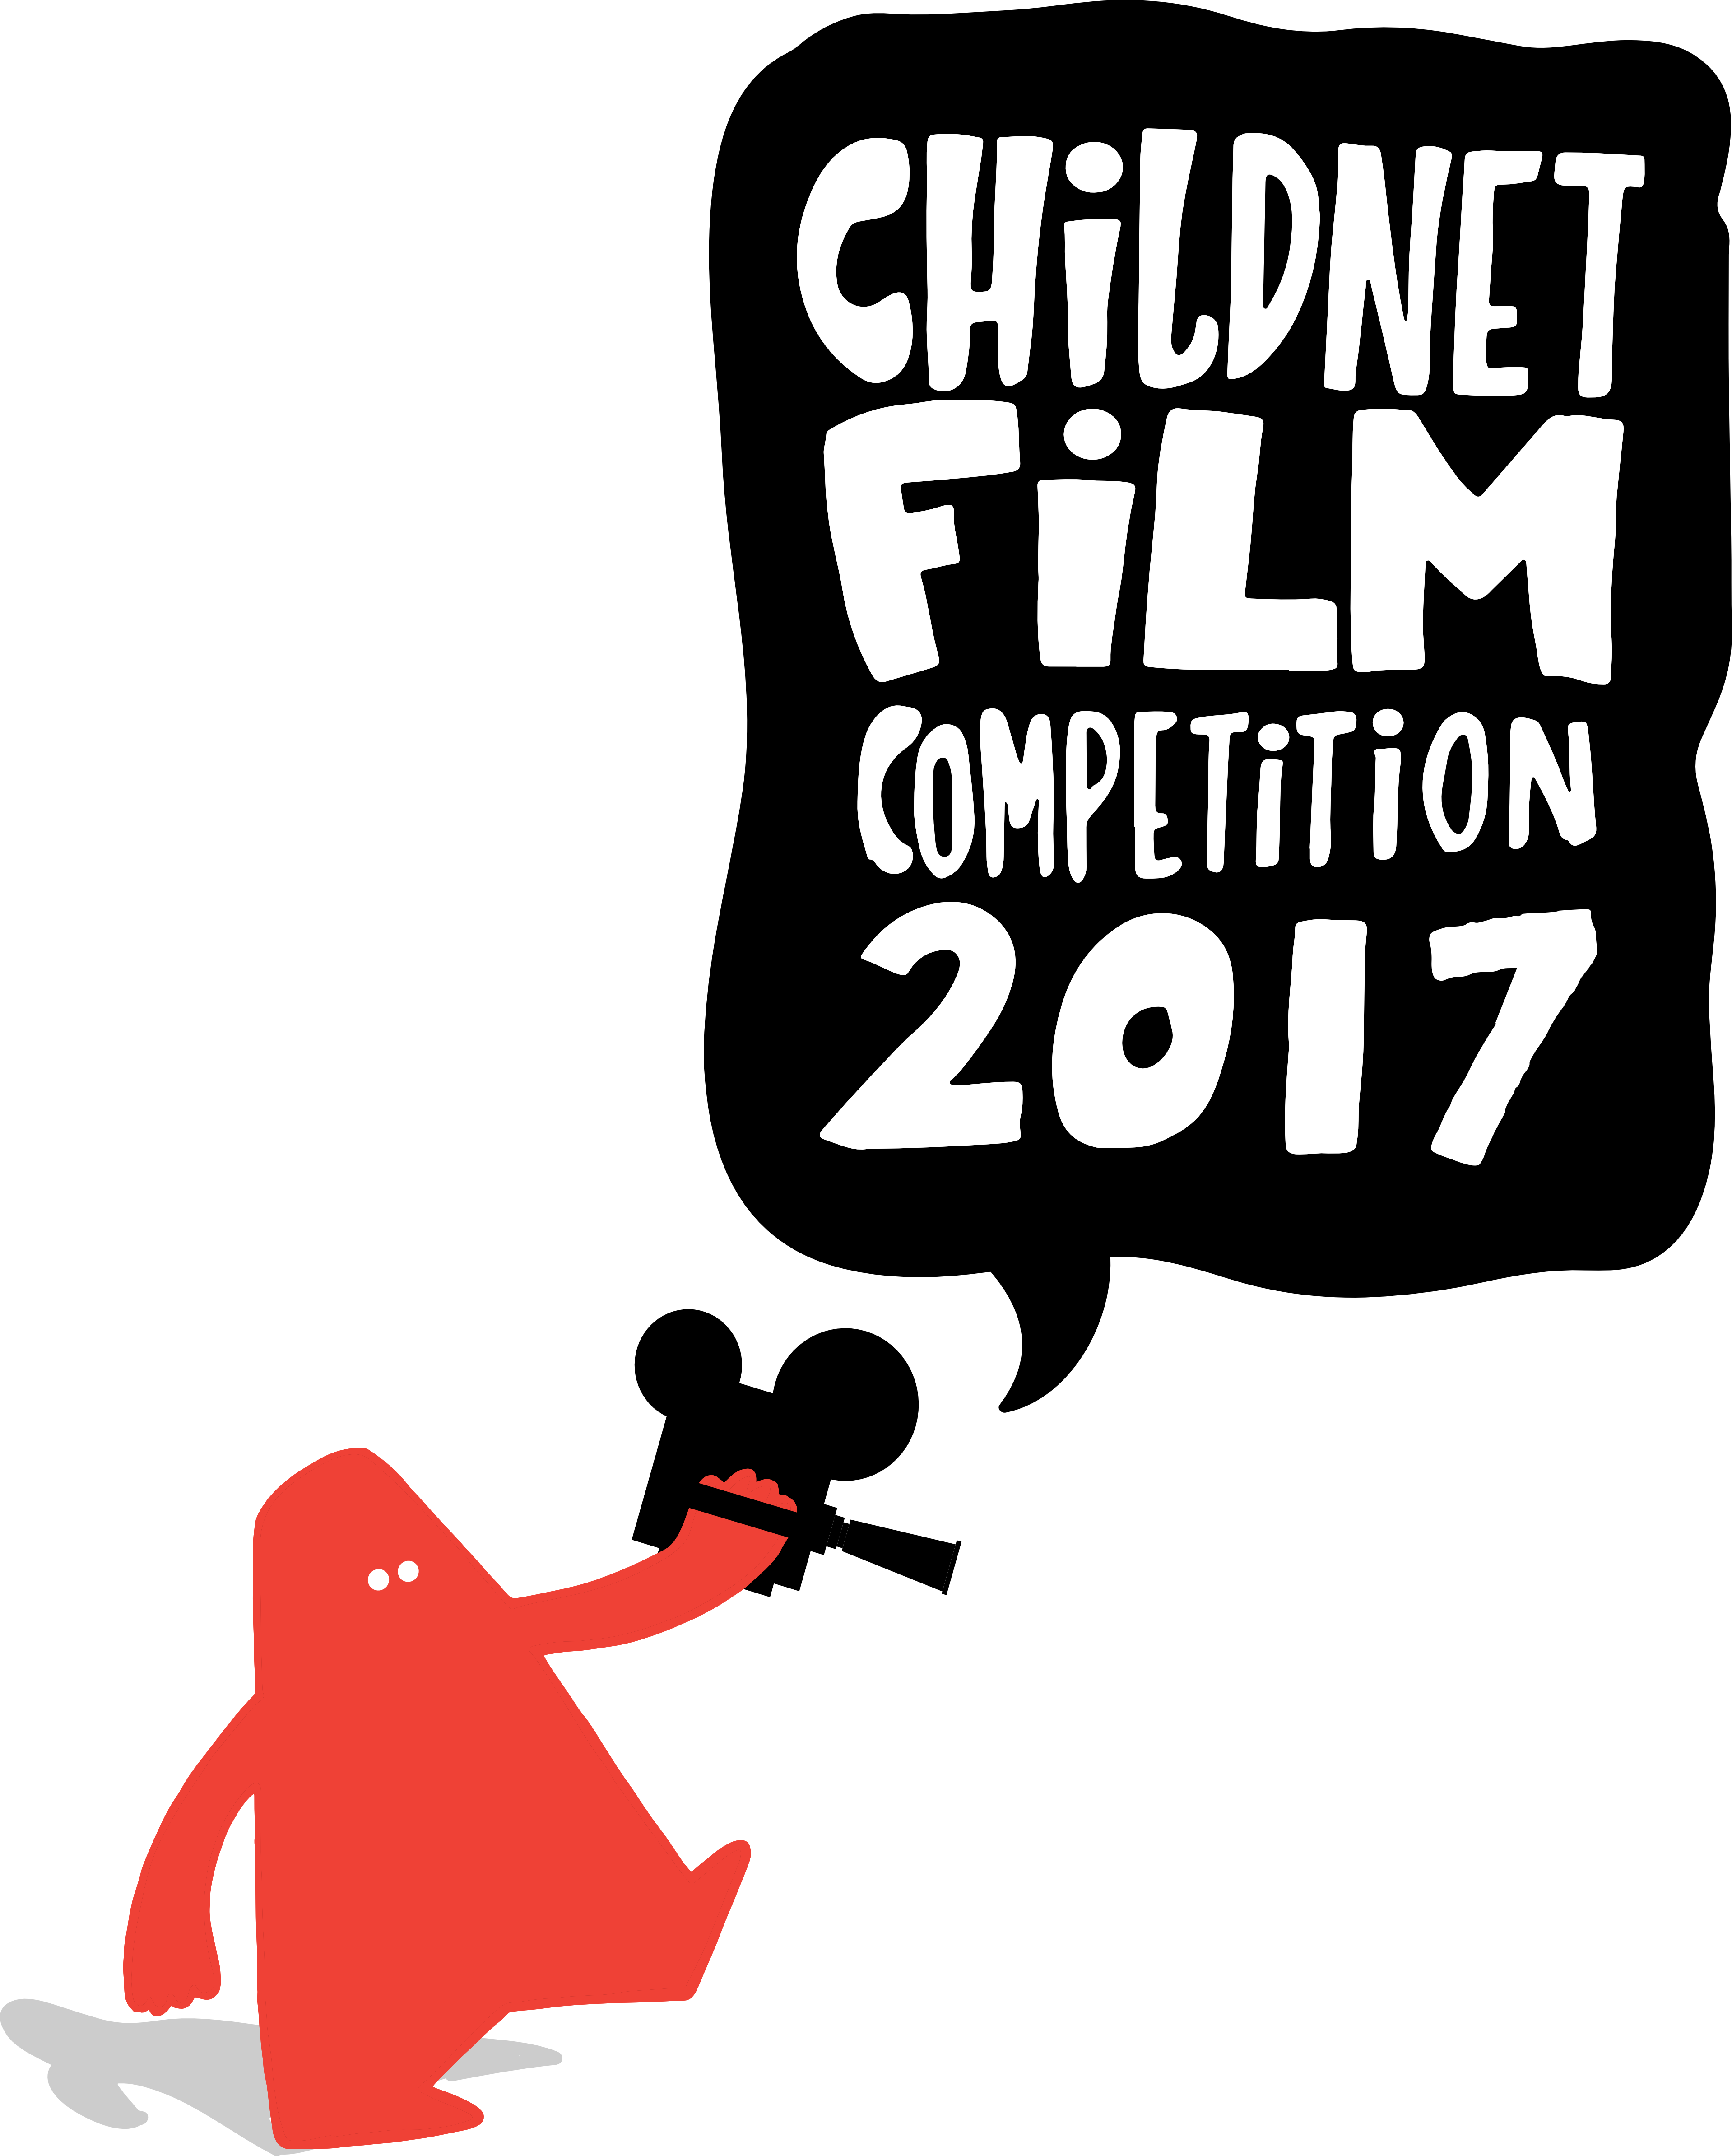 Childnet Film Competition 2017 launches!.